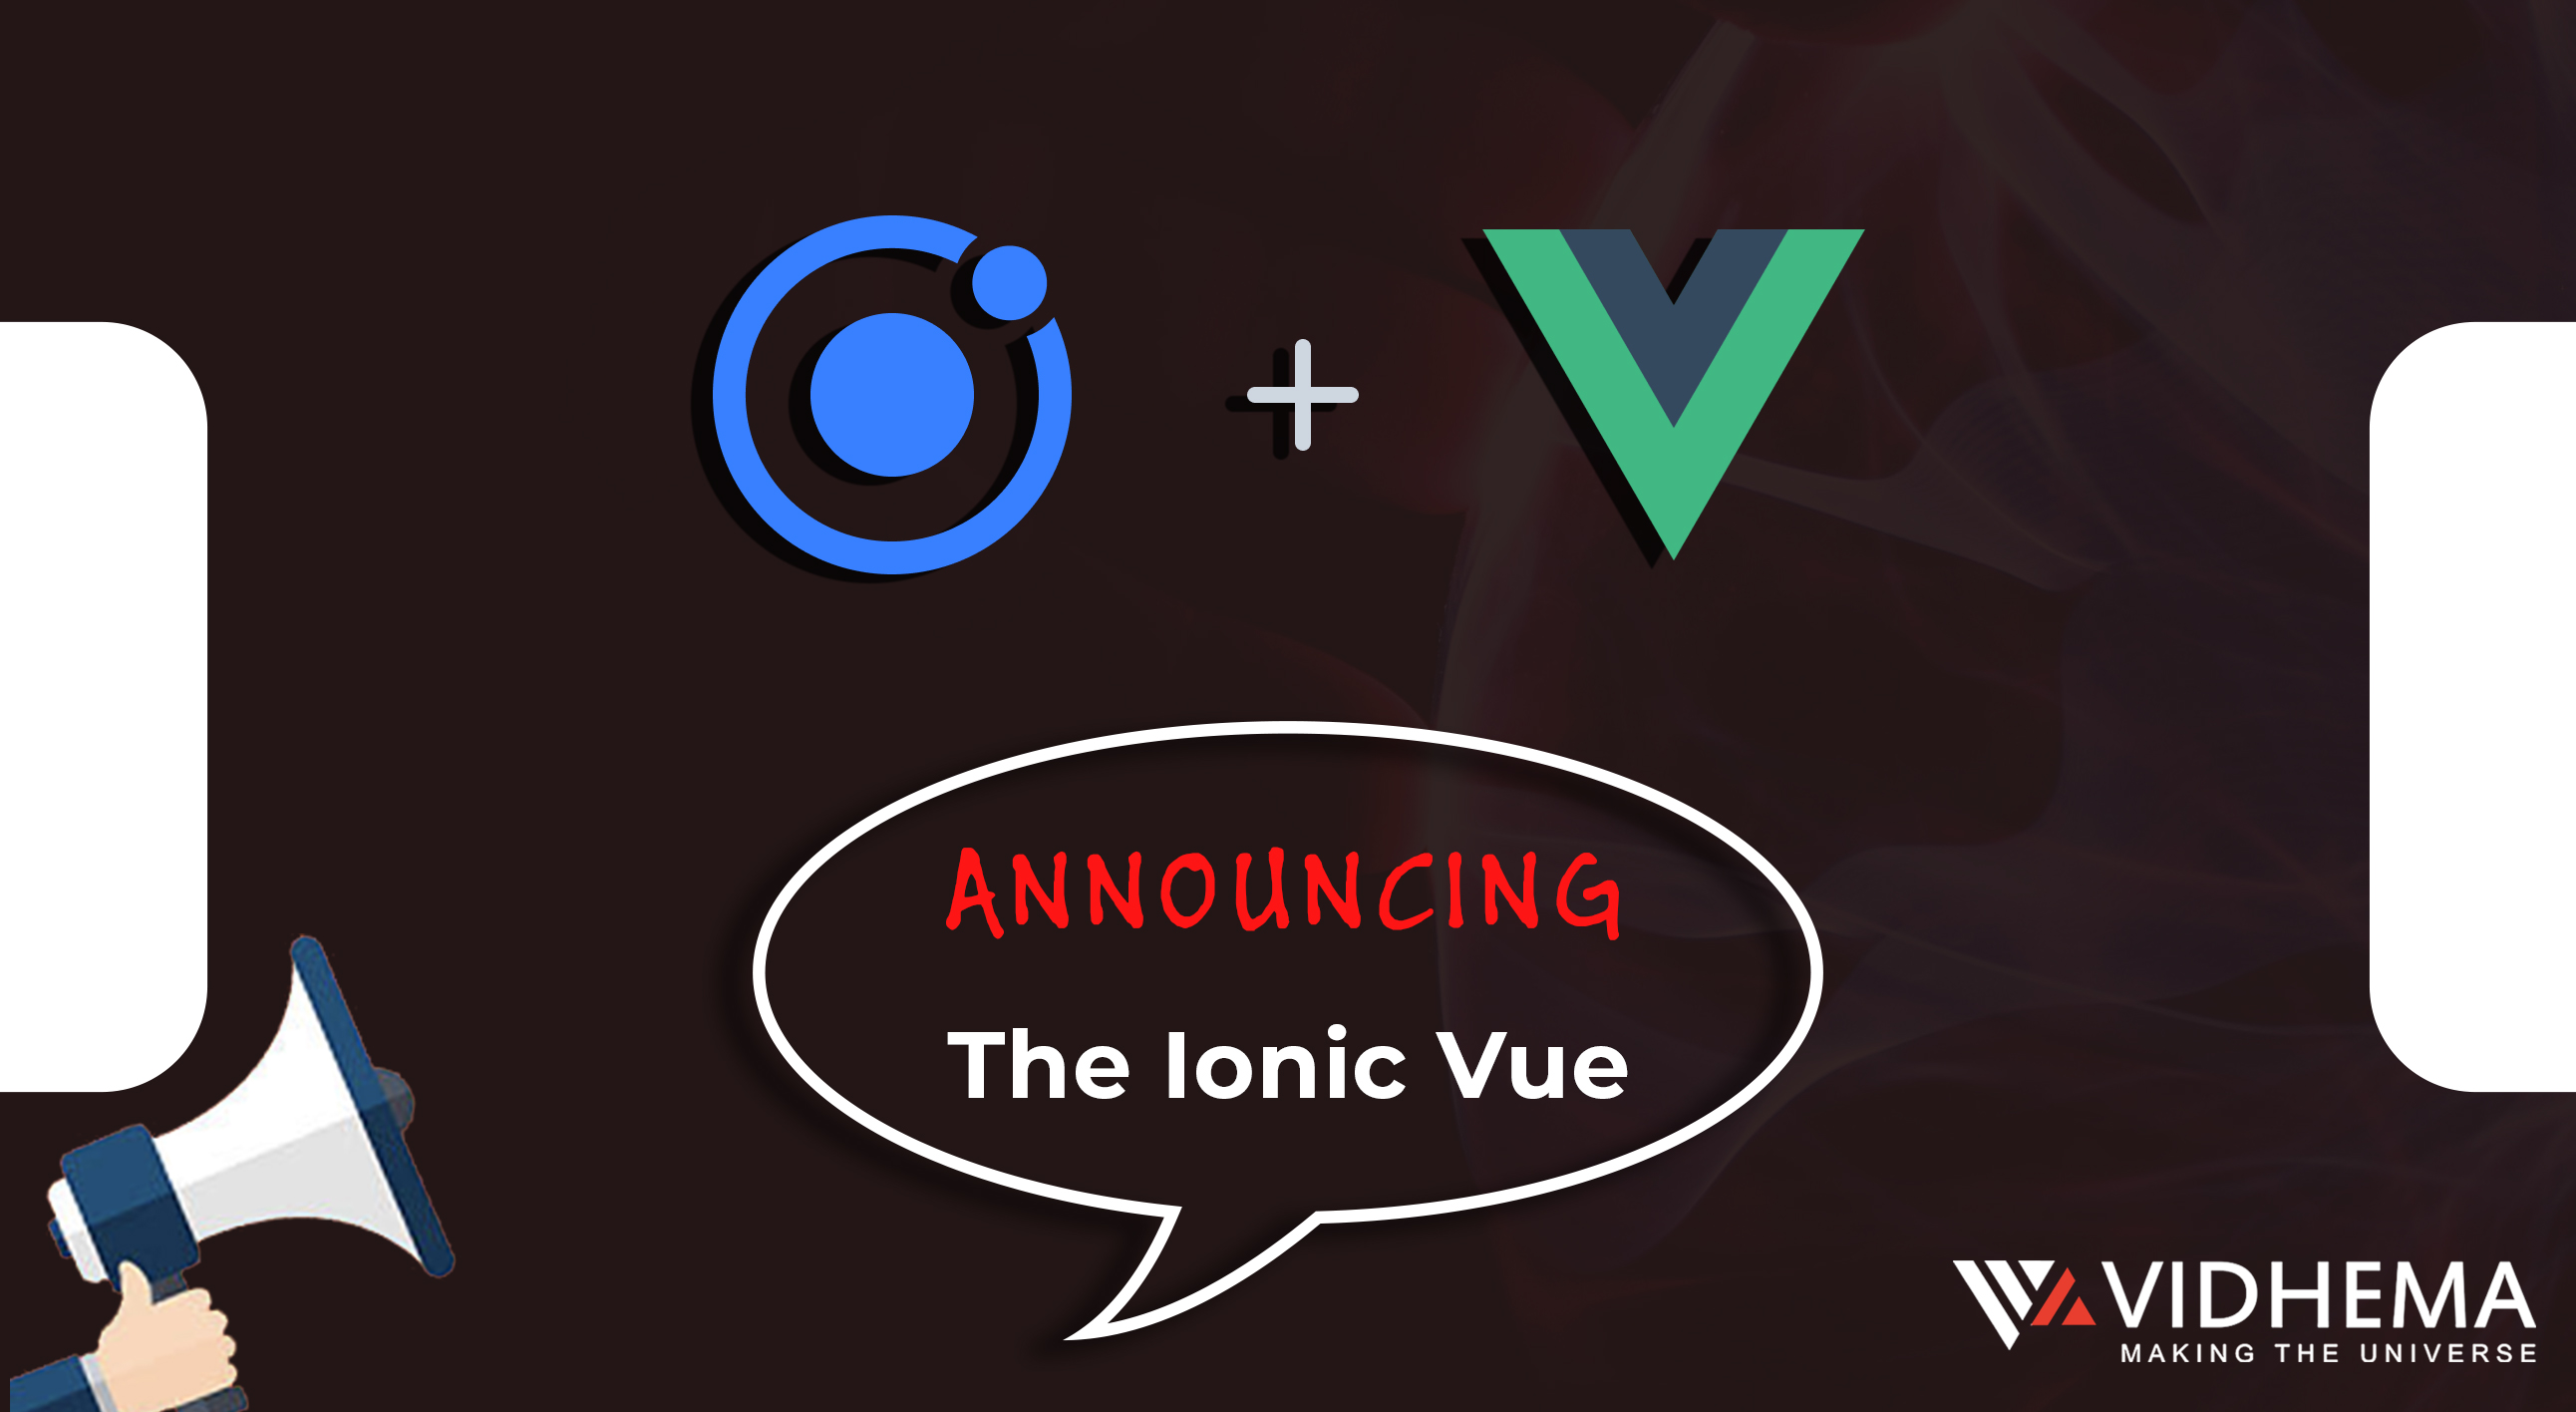 Announcing The Ionic Vue